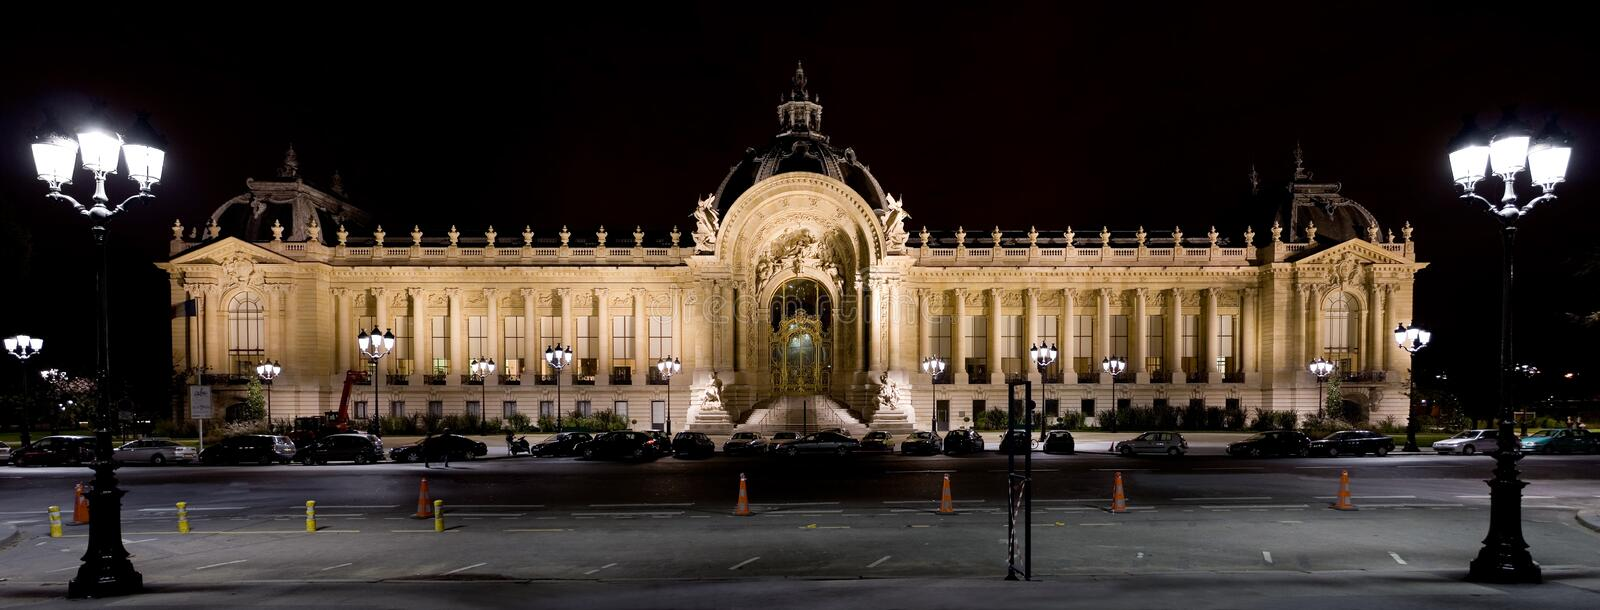 Petit Palais (petit palais) photos stock